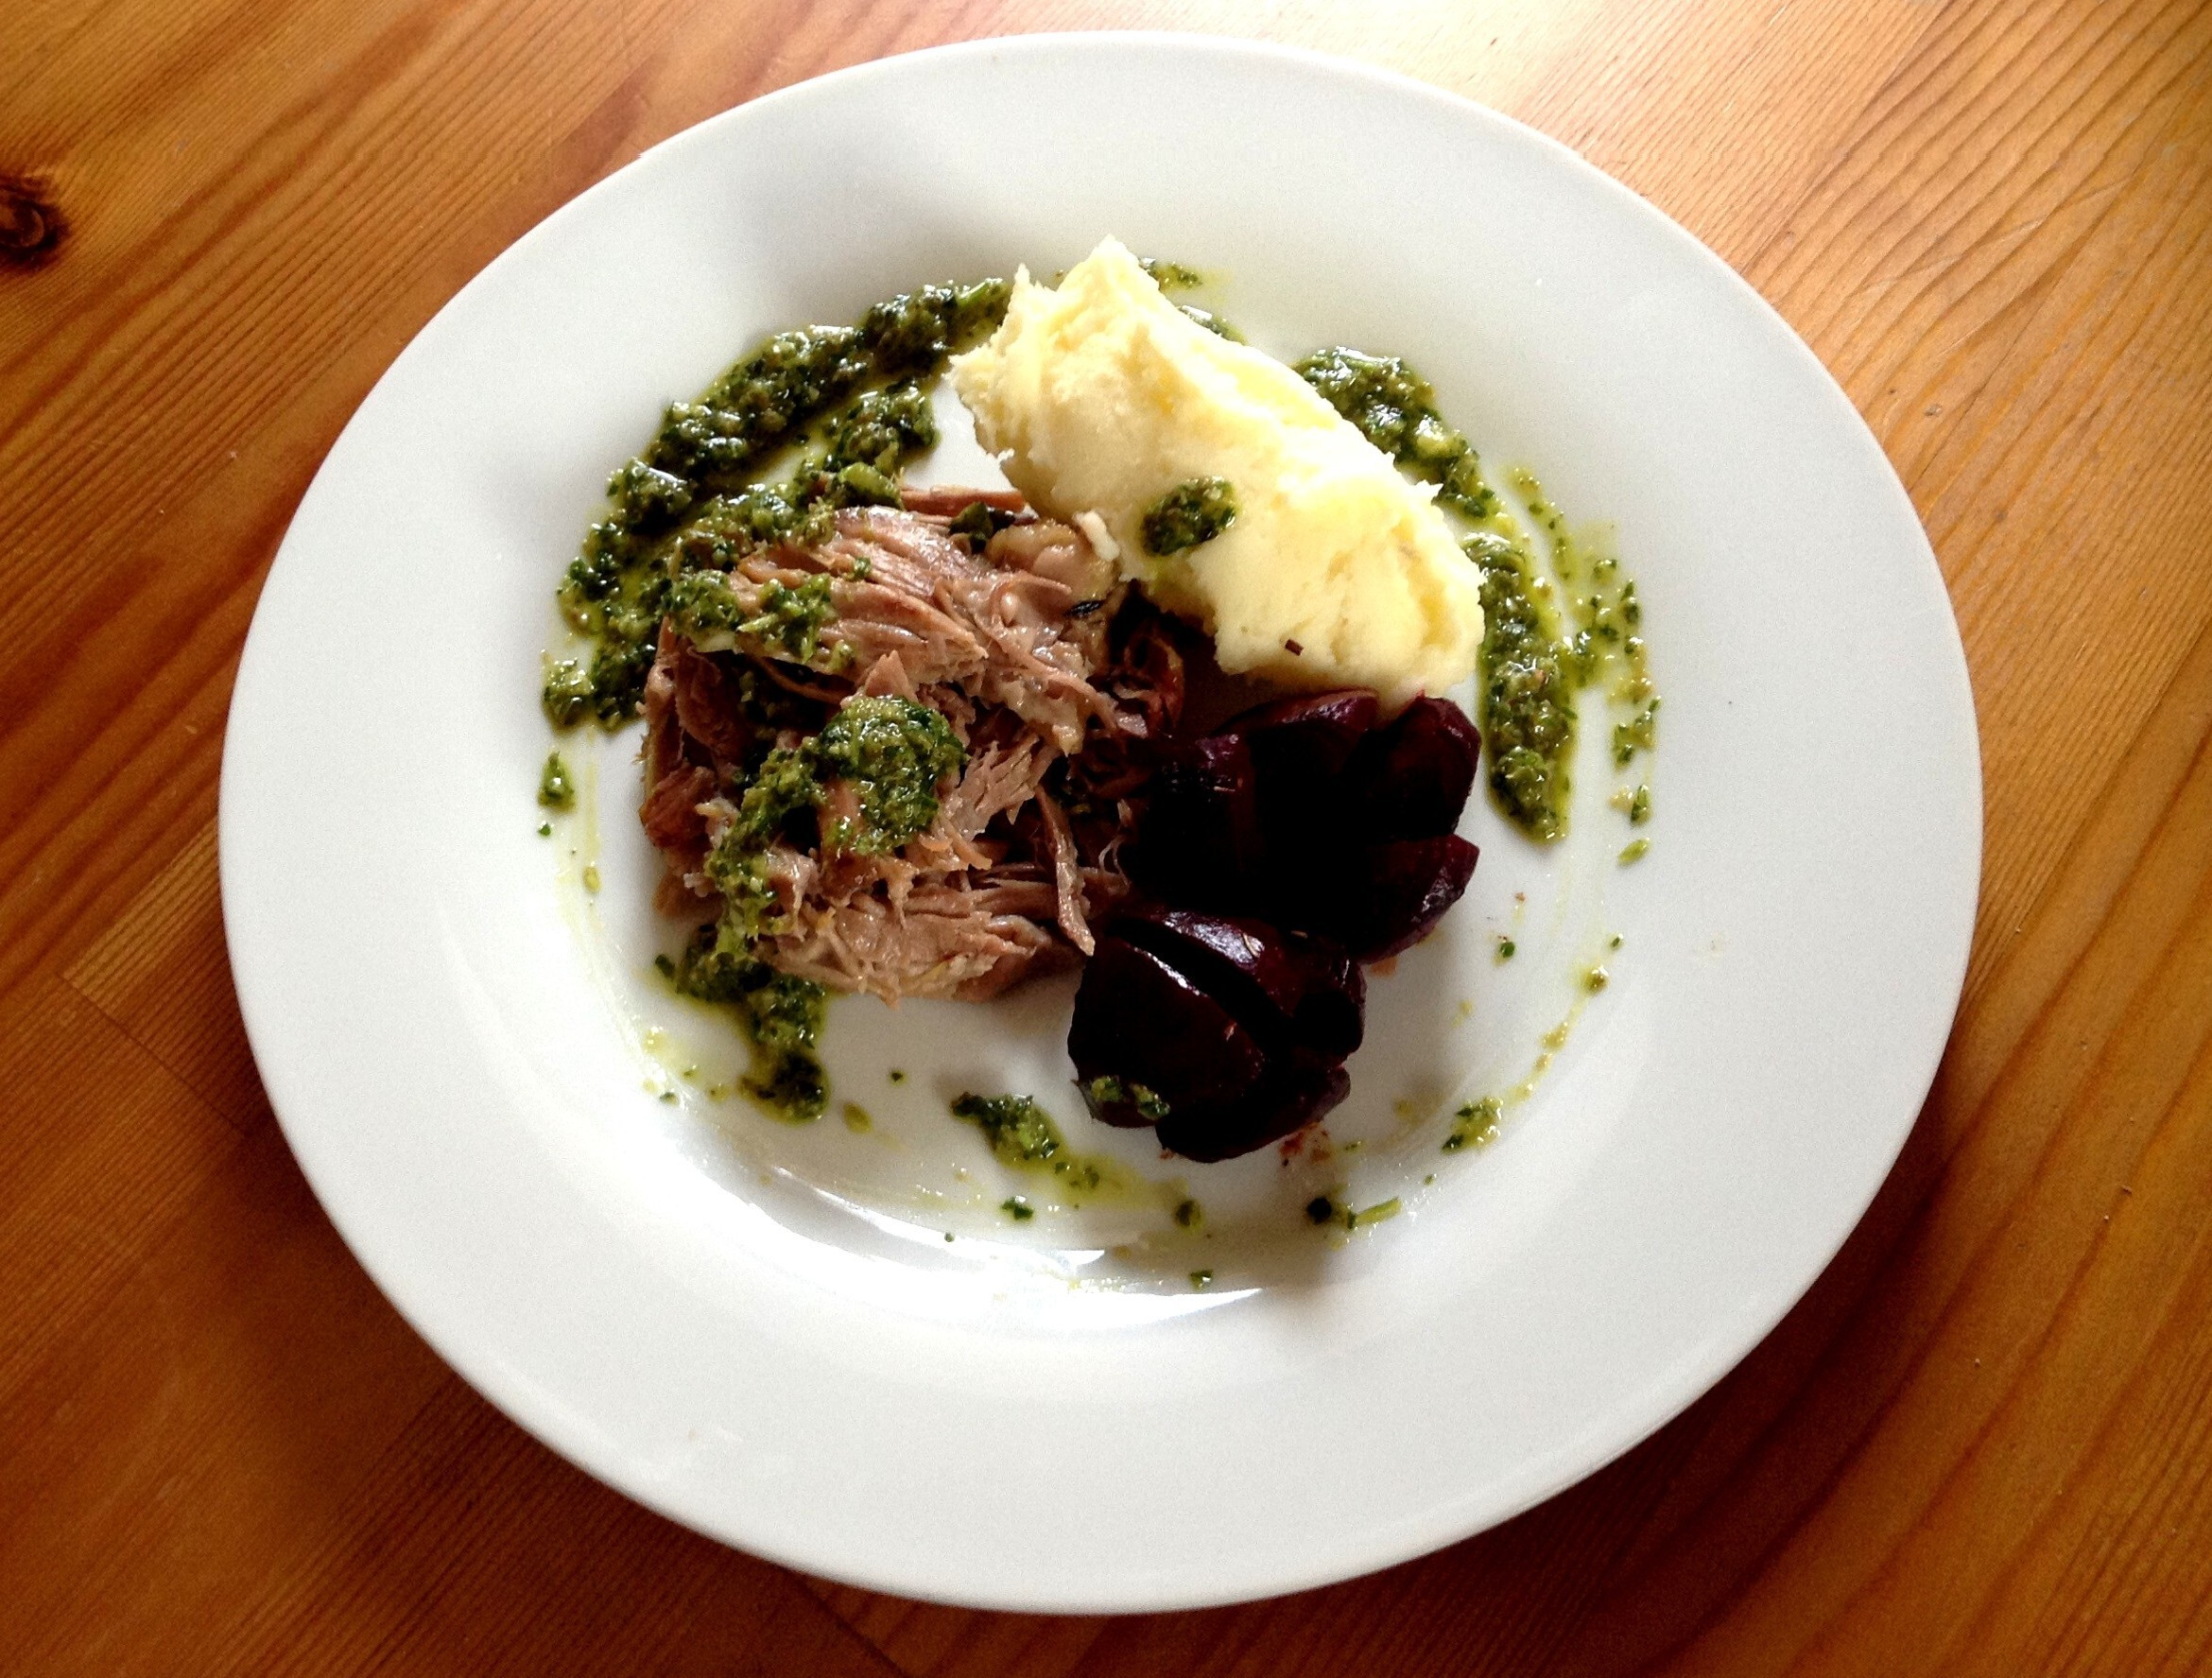 6-hour Confit Shoulder of Lamb with Salsa Verde and Roasted Rosemary Beets